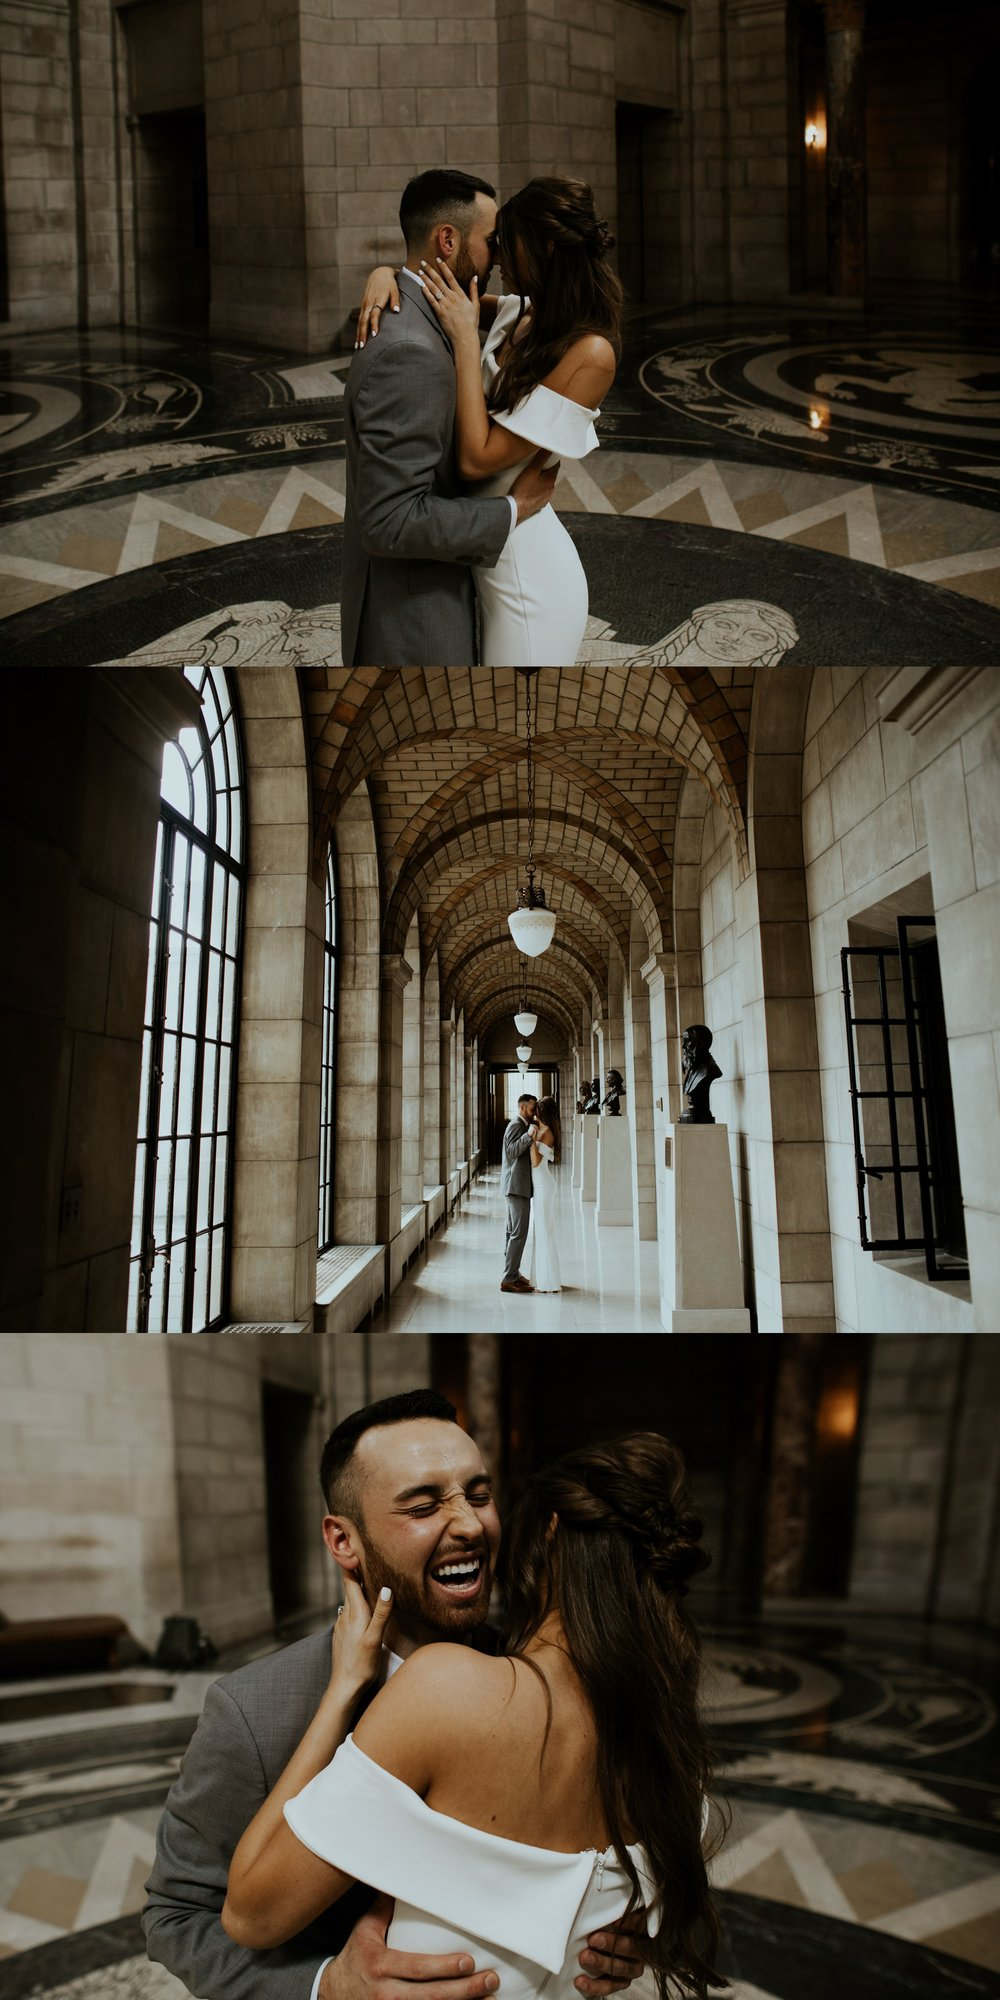 Spring Nebraska State Capitol Engagement Session - Gabby and Michael - Trin Jensen Photography_0003.jpg